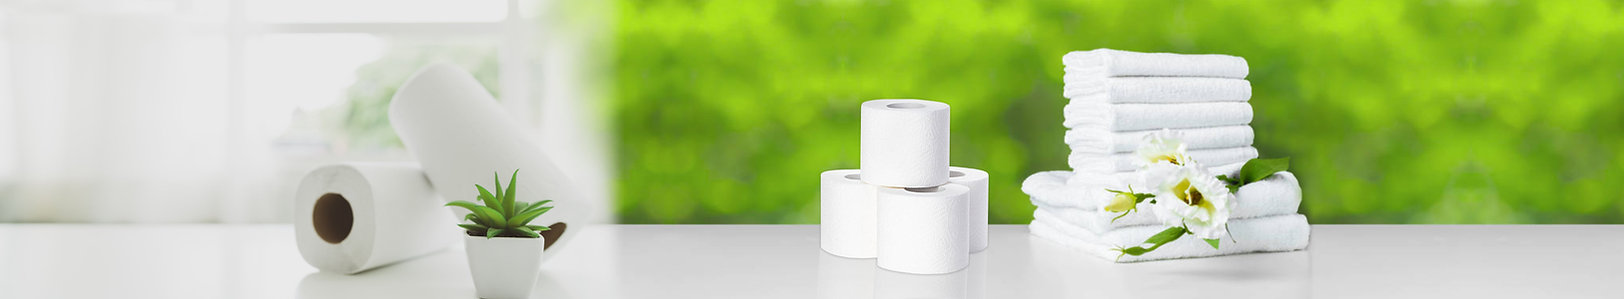 paper rolls on counter image.jpg